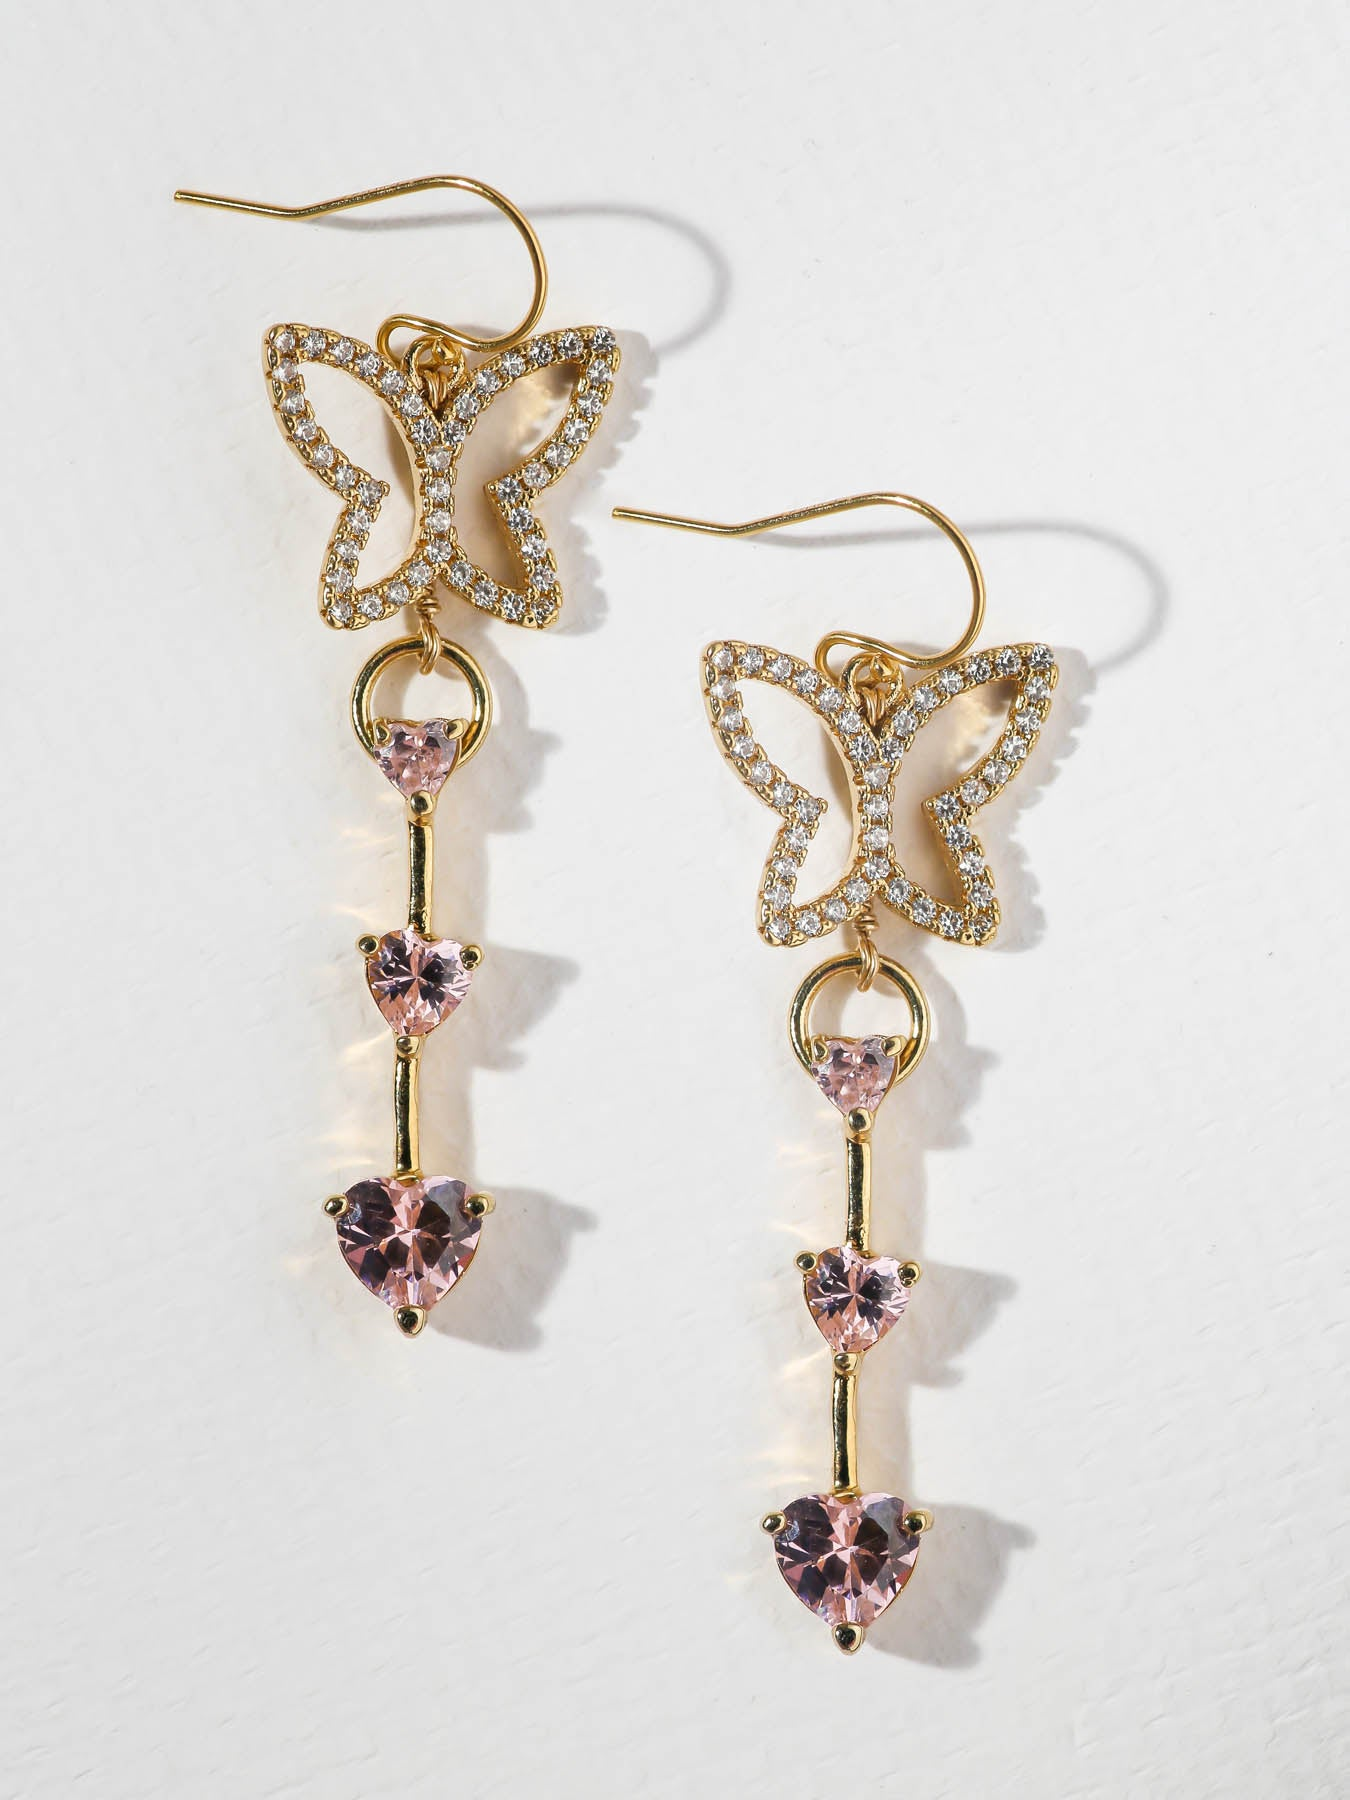 Sale Items The Wishful Butterfly Earrings Vanessa Mooney